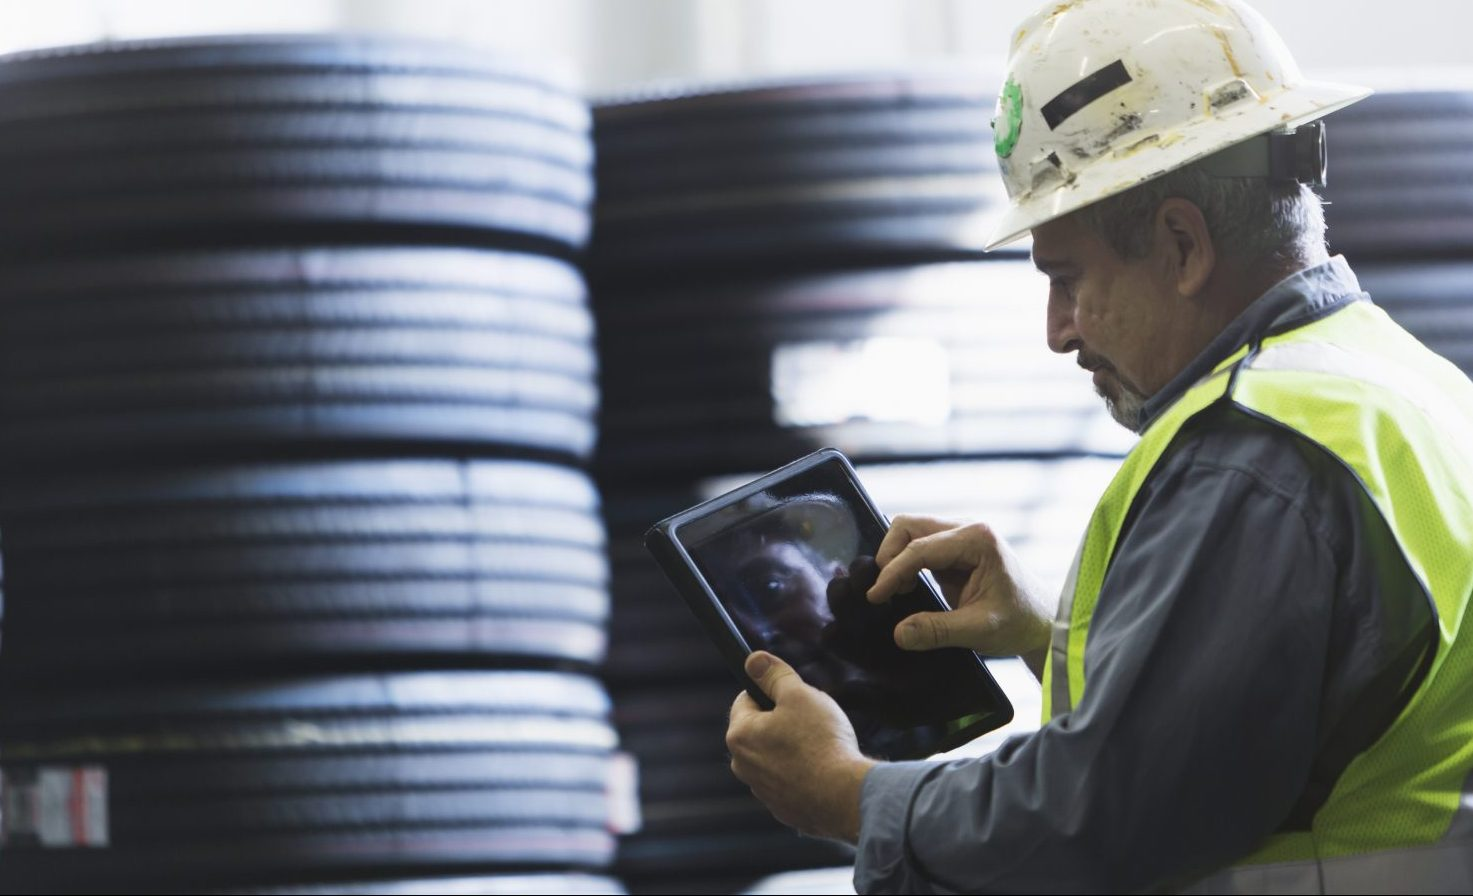 A mature man, in his 50s, wearing a white hardhat and yellow safety vest, is working in a warehouse full of truck tires.  He is using a digital tablet to take inventory of the stacks of product.